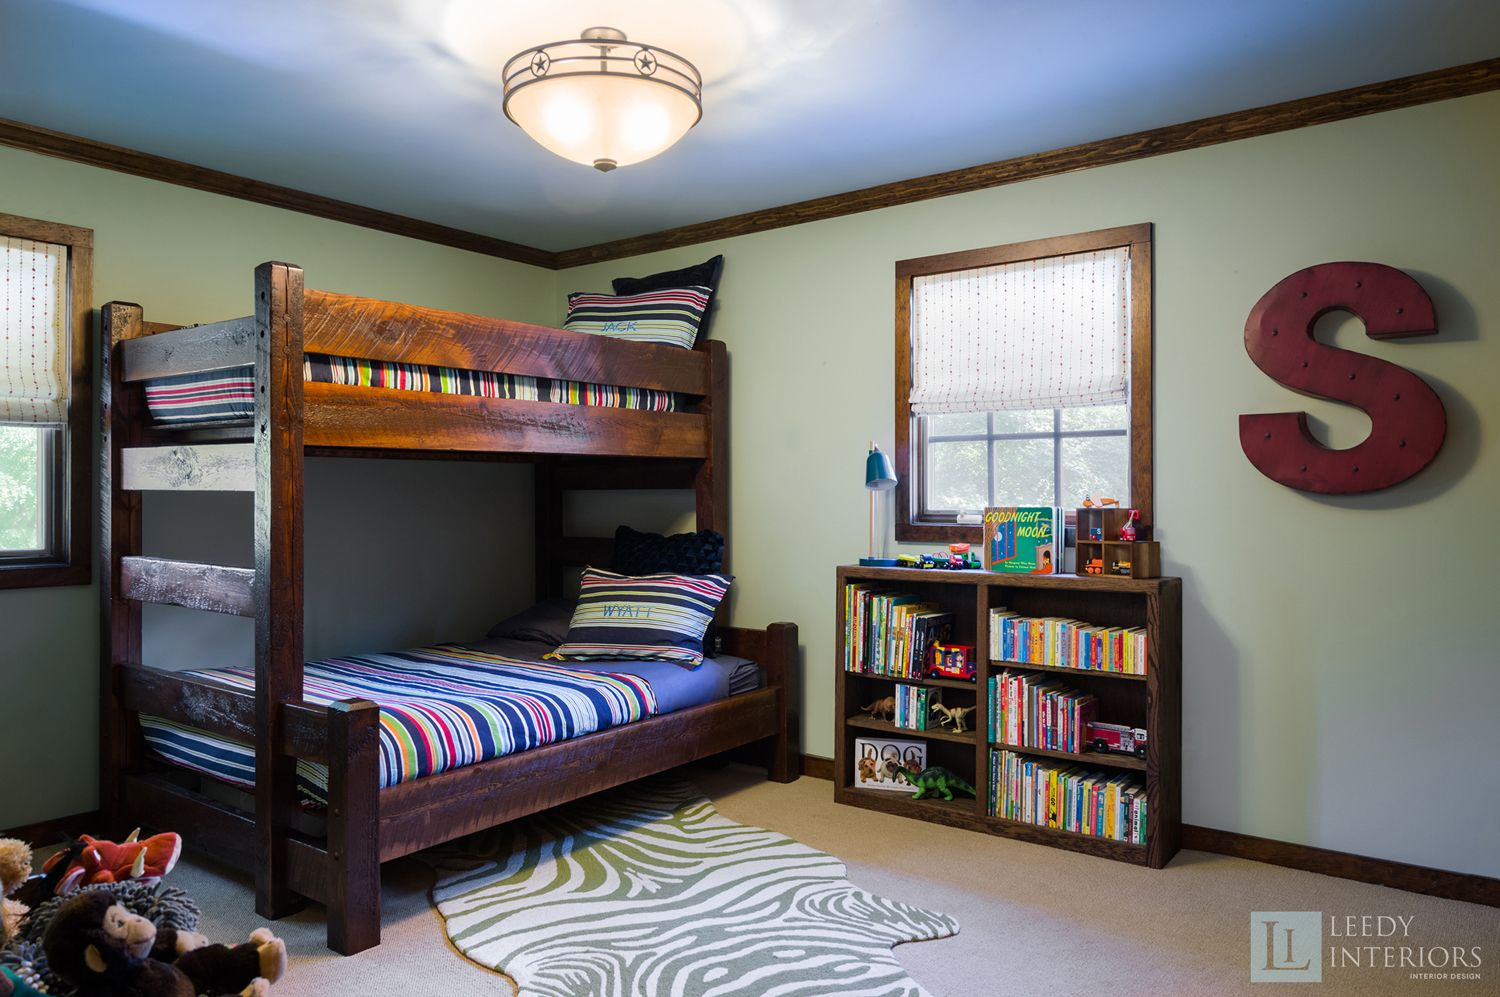 We designed this bedroom for 2 young boys who absolutely love animals, who doesn't? The boys needed a place to store their abundance of stuffed animals and custom open top storage bins were the perfect solution. We balanced the hardness and weight of the wood in the room with fabric roman shades, soothing paint colors and an area rug. The area rug and window treatments also add subtle texture to the room. www.leedyinteriors.com